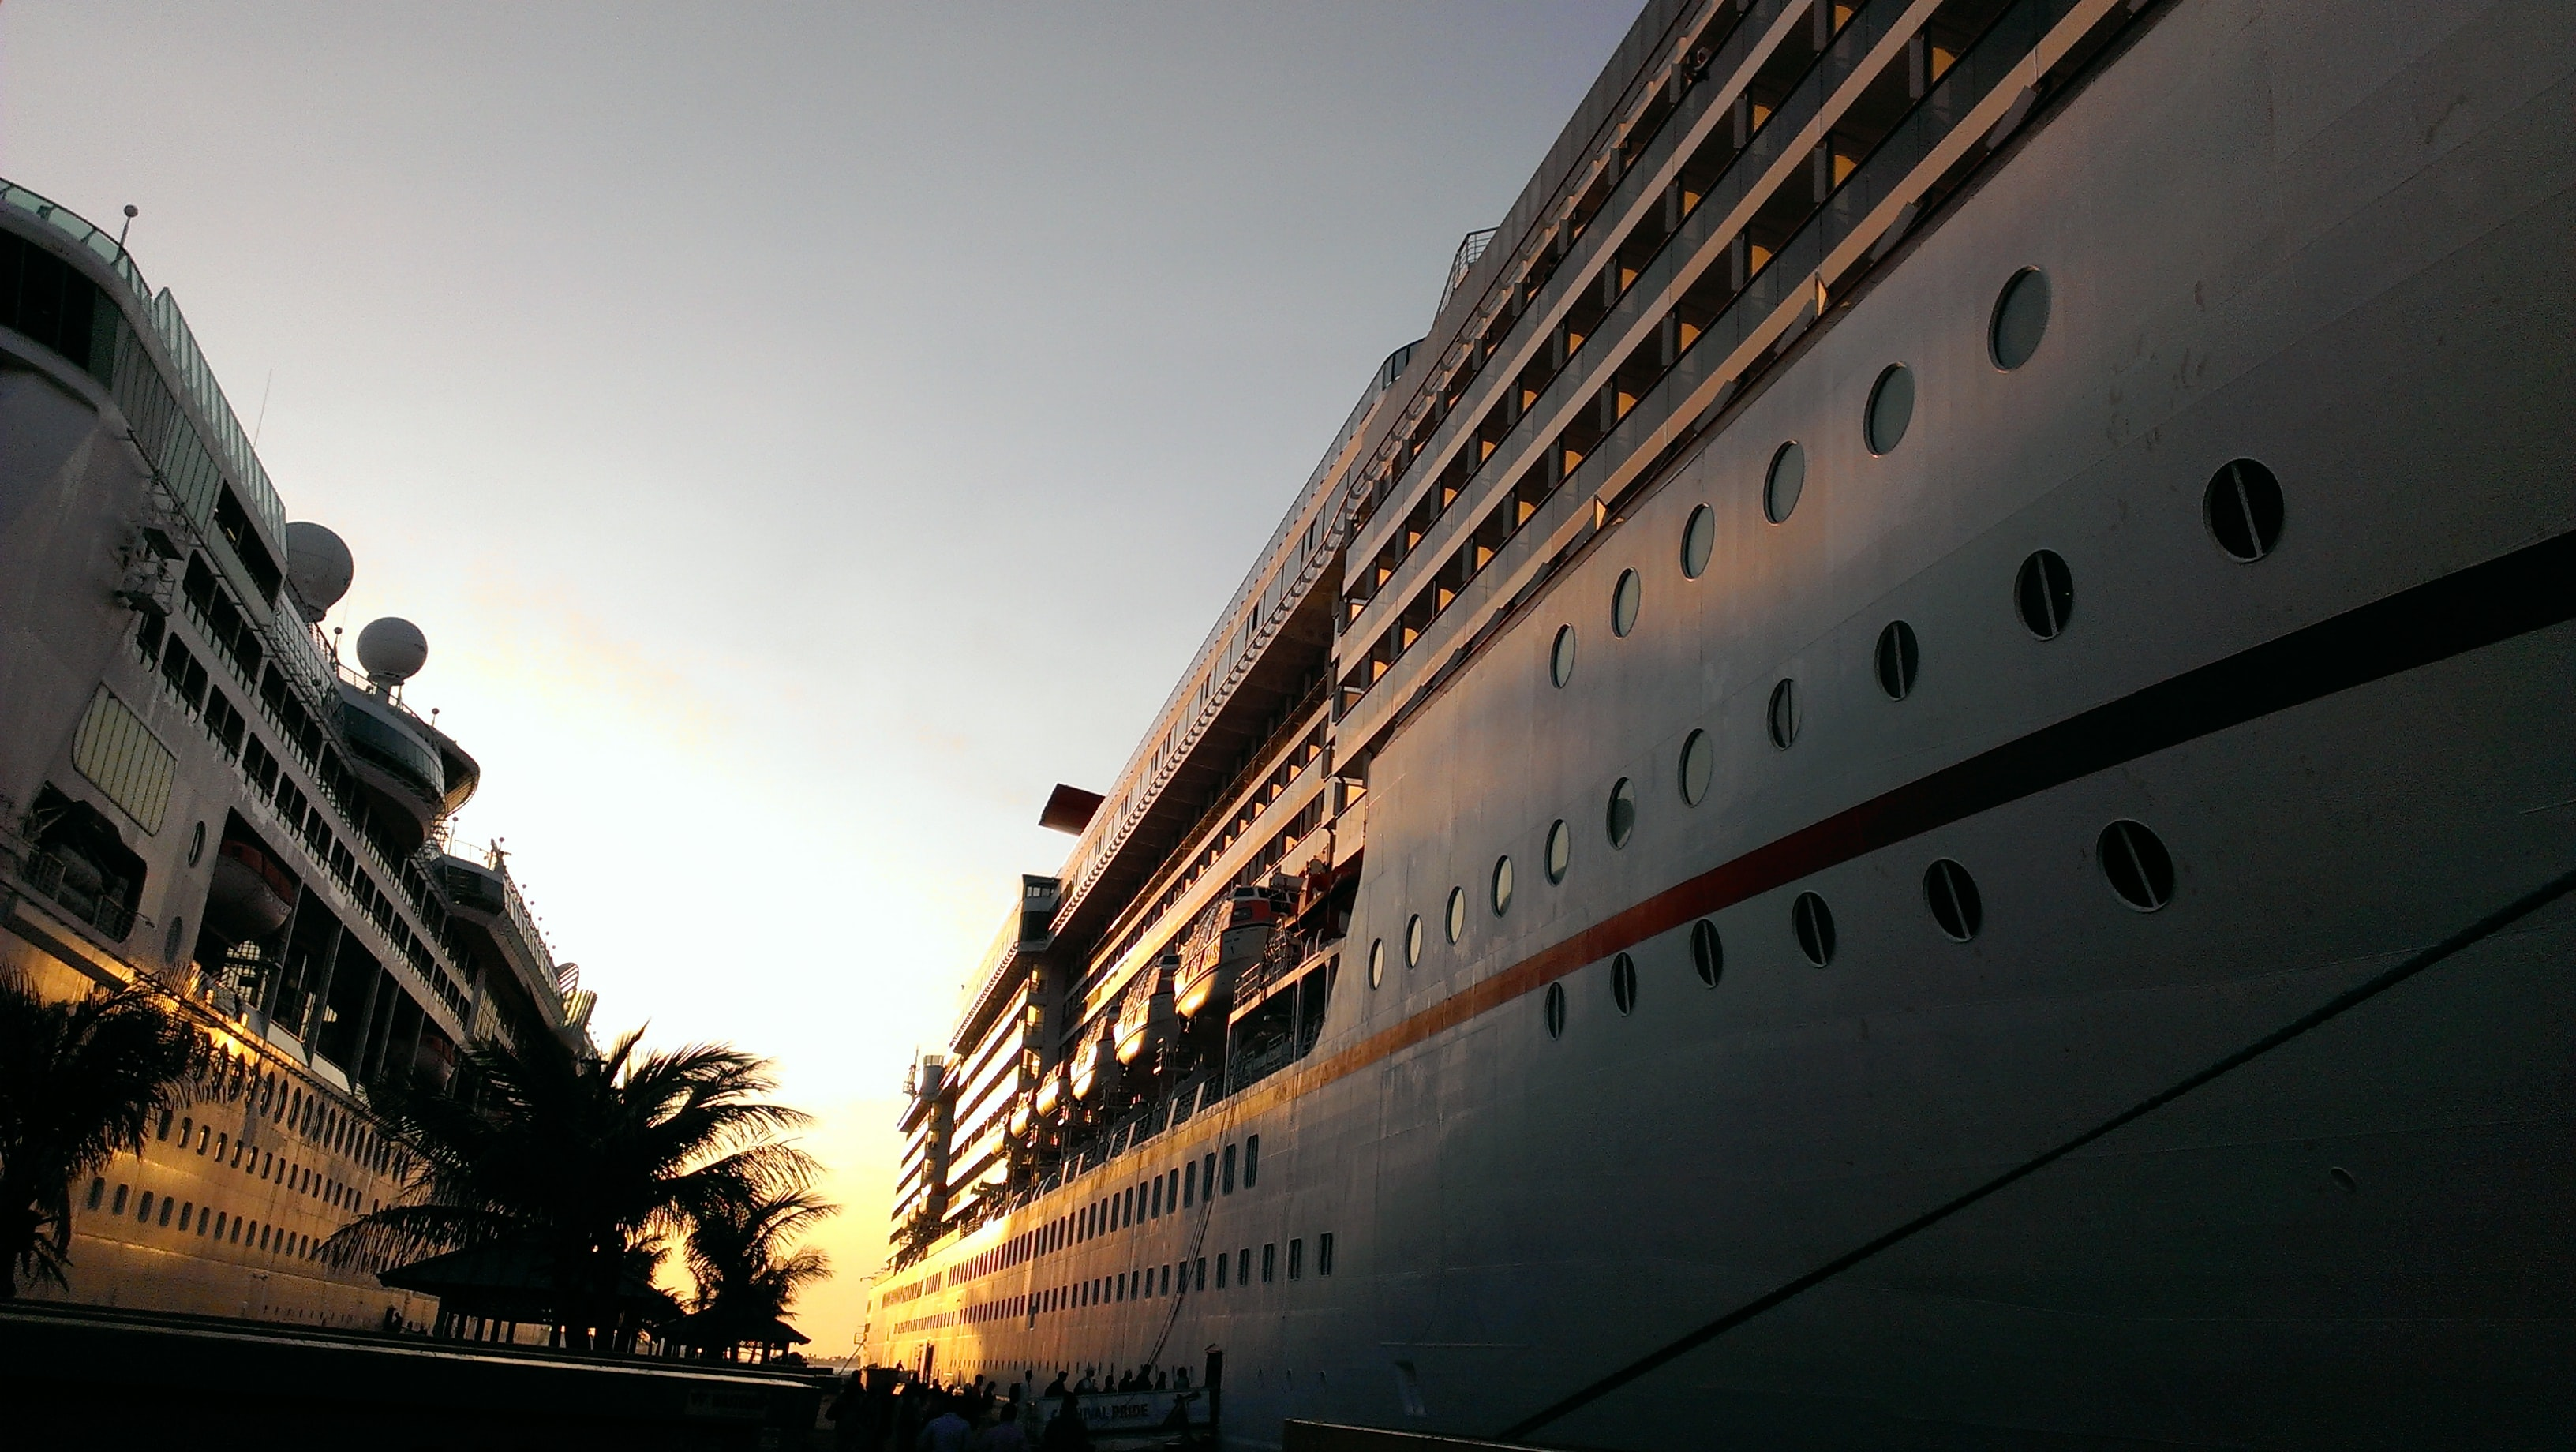 cruise ship docked during golden time